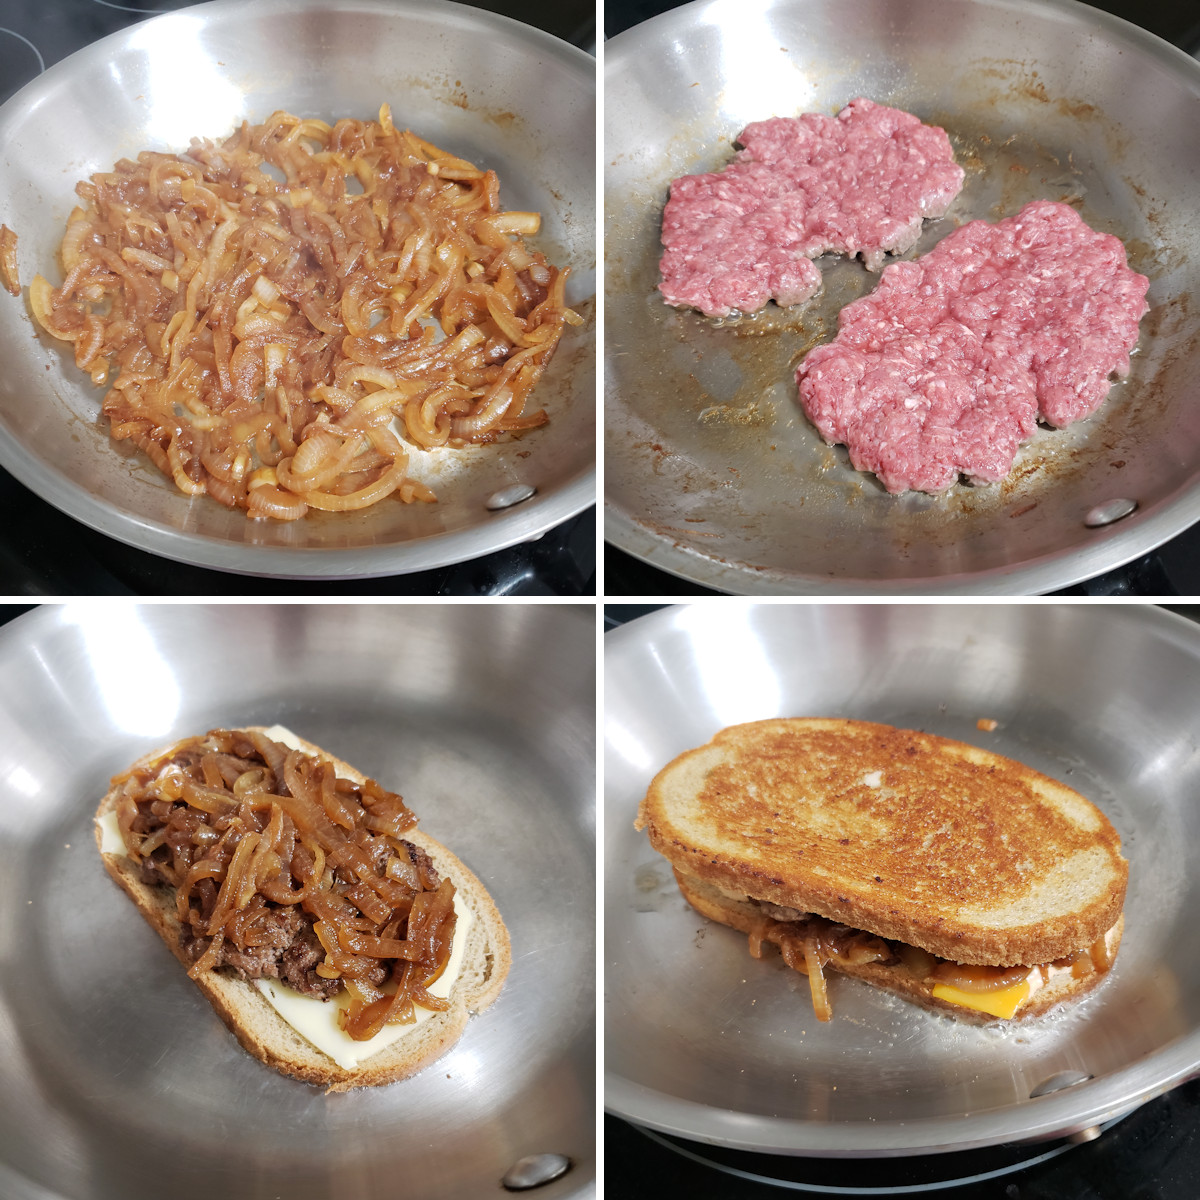 Cooking a patty melt in a skillet.